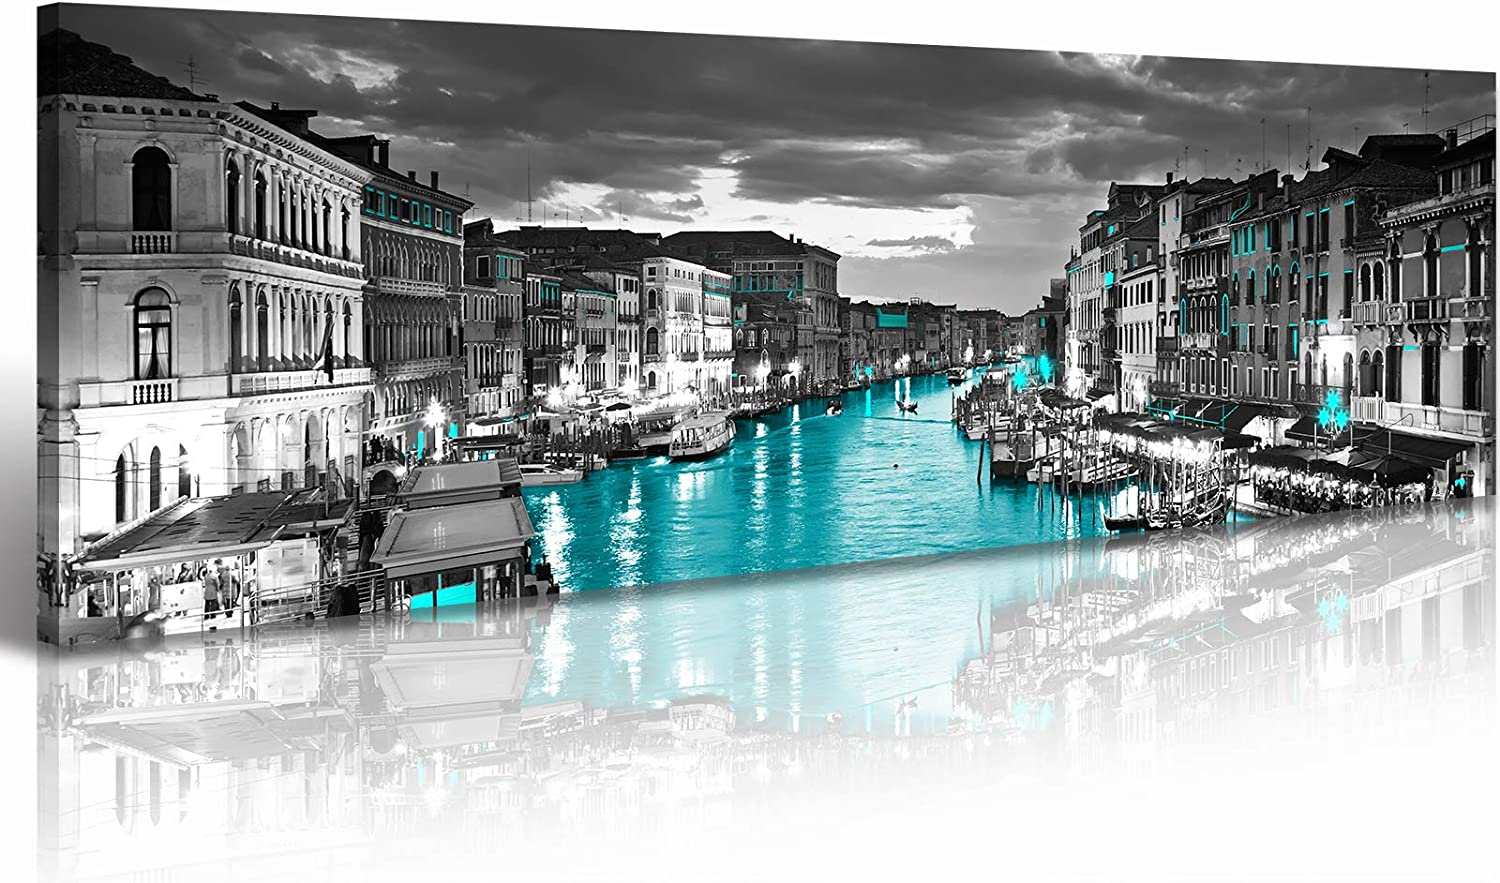 Venice Skyline Wall Art Black and White City Canvas Artwork Italy Cityscape Coastal Aqua Green Teal Waterfront Painting Poster for Bedroom Office Decoration Modern Home Art Stretch Framed Ready Hang